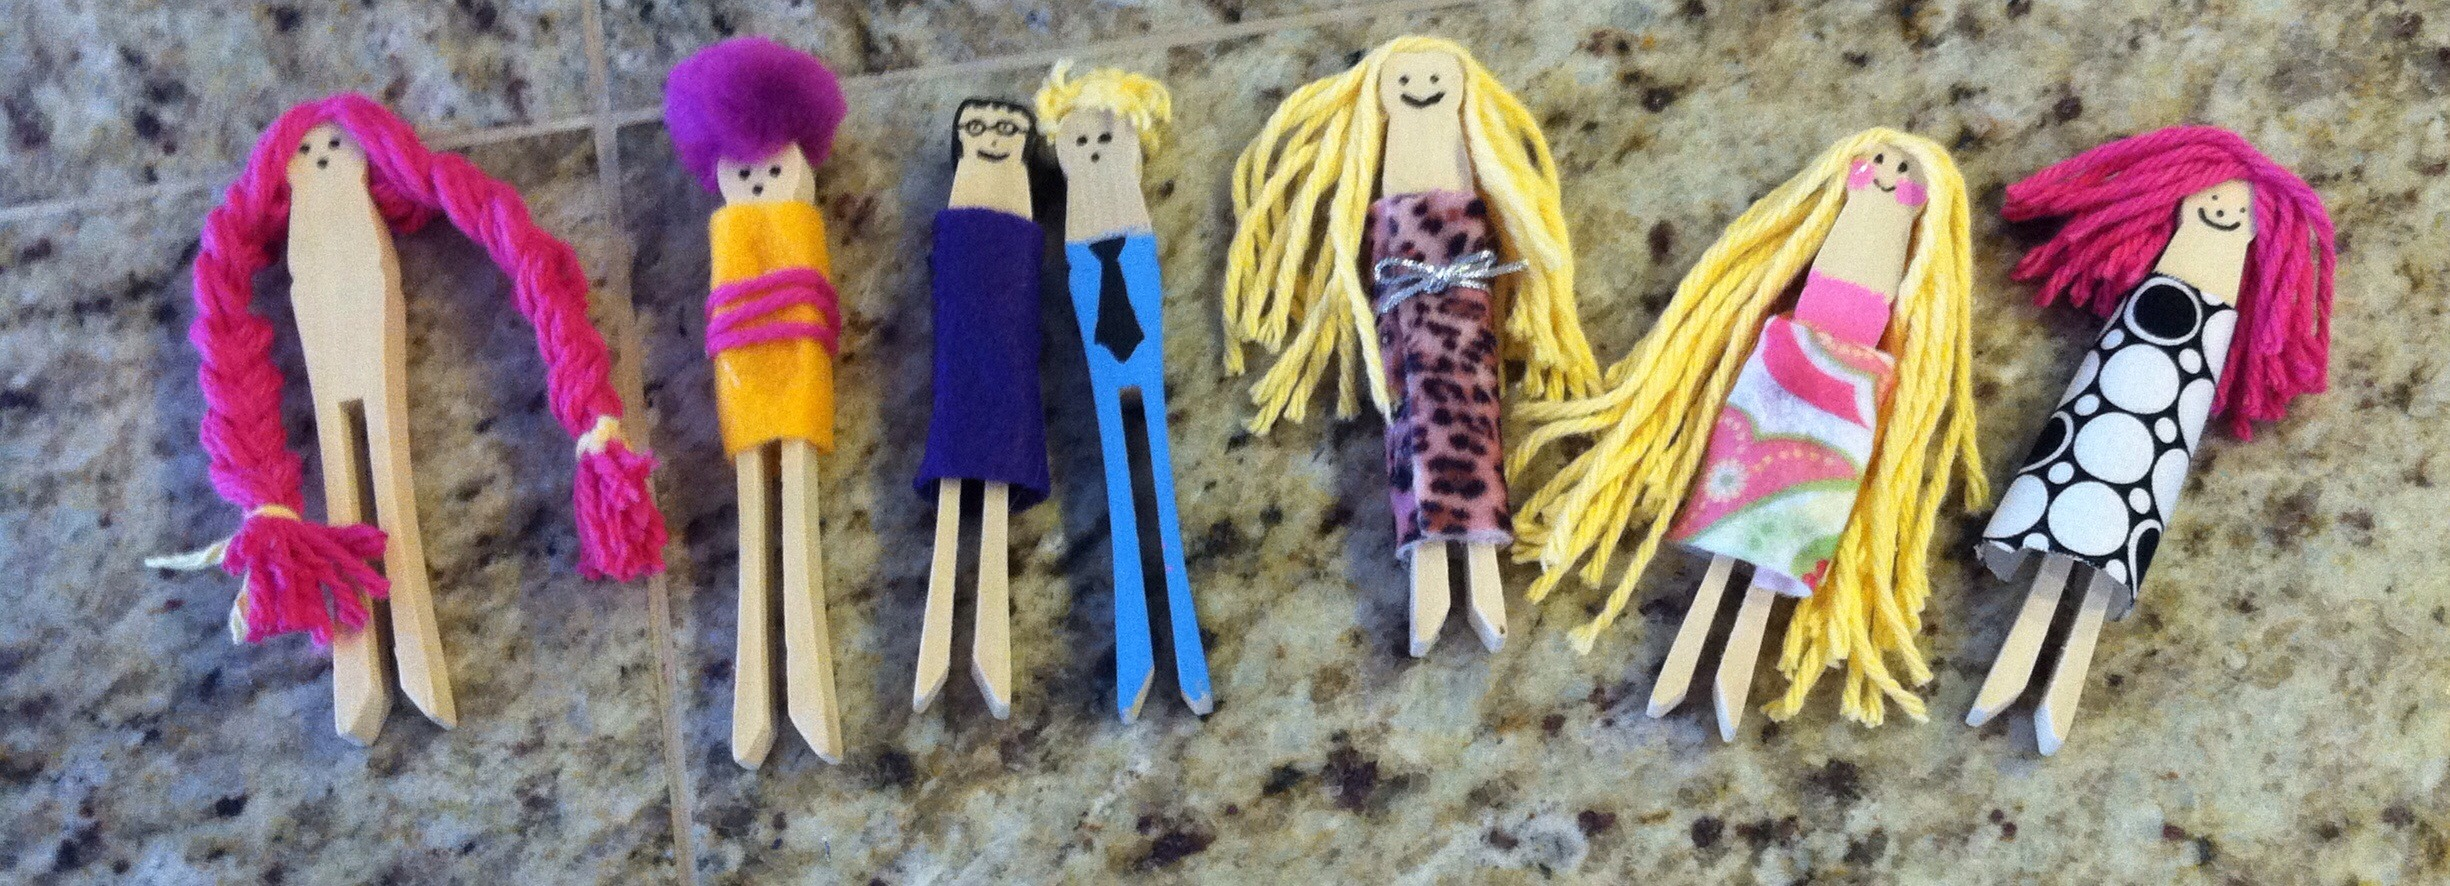 So easy and fun! Created some to look like family members and I was so suprised- my toddler was obsessed for months..